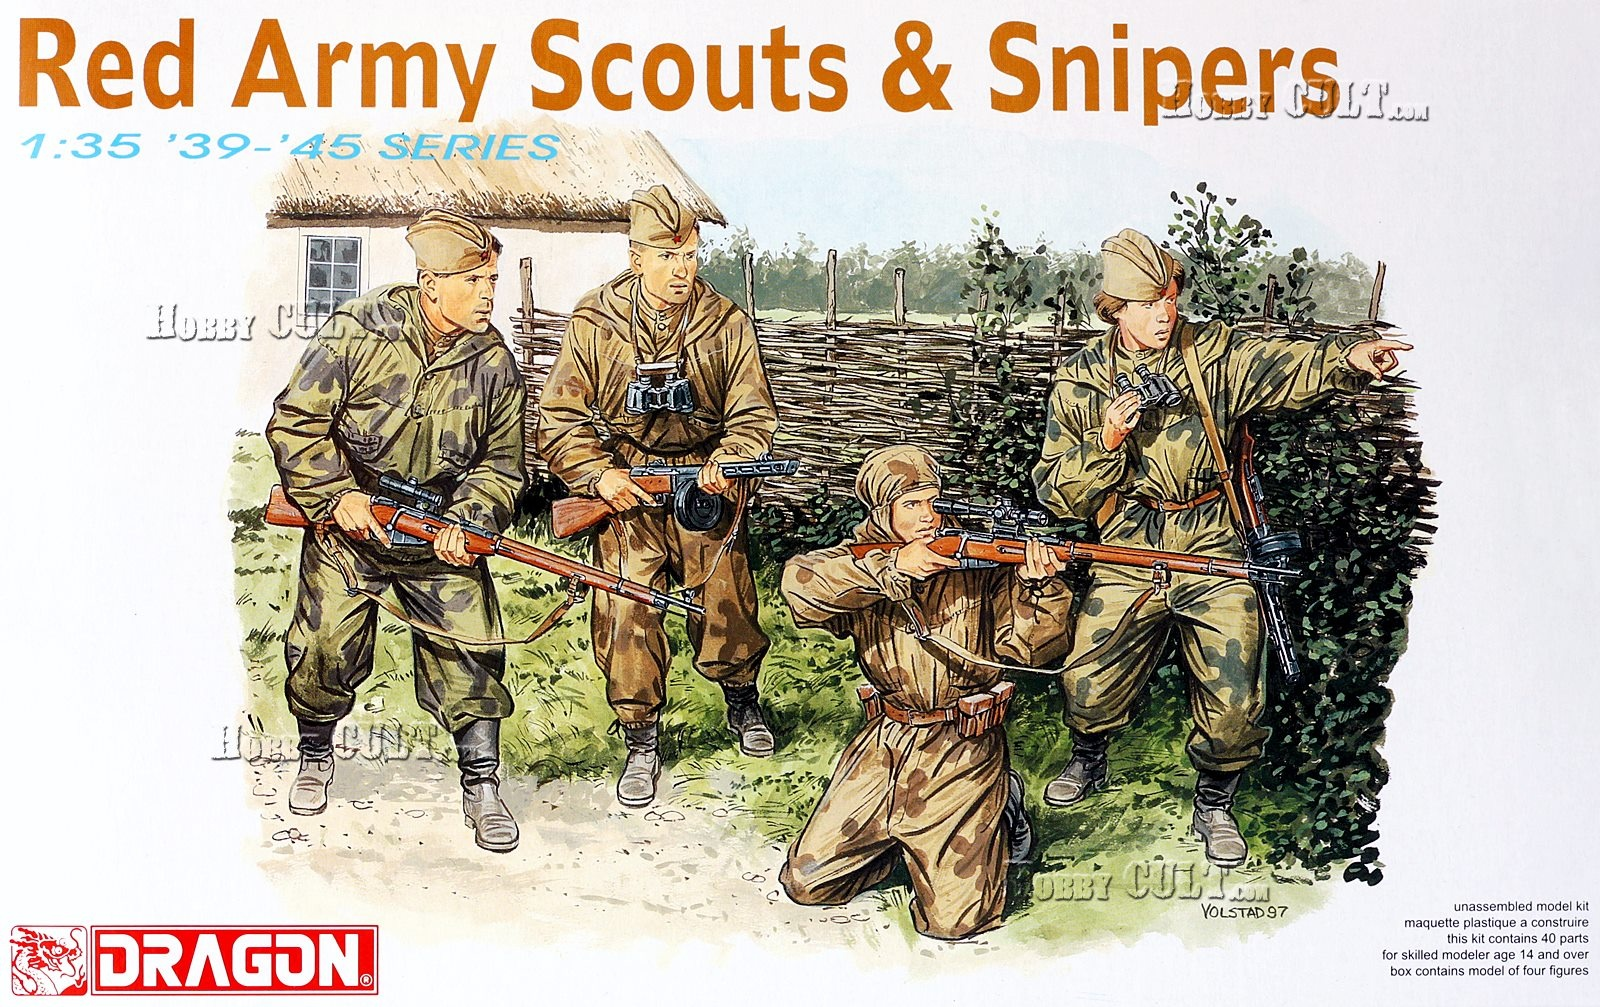 1:35 Red Army Scouts & Snipers